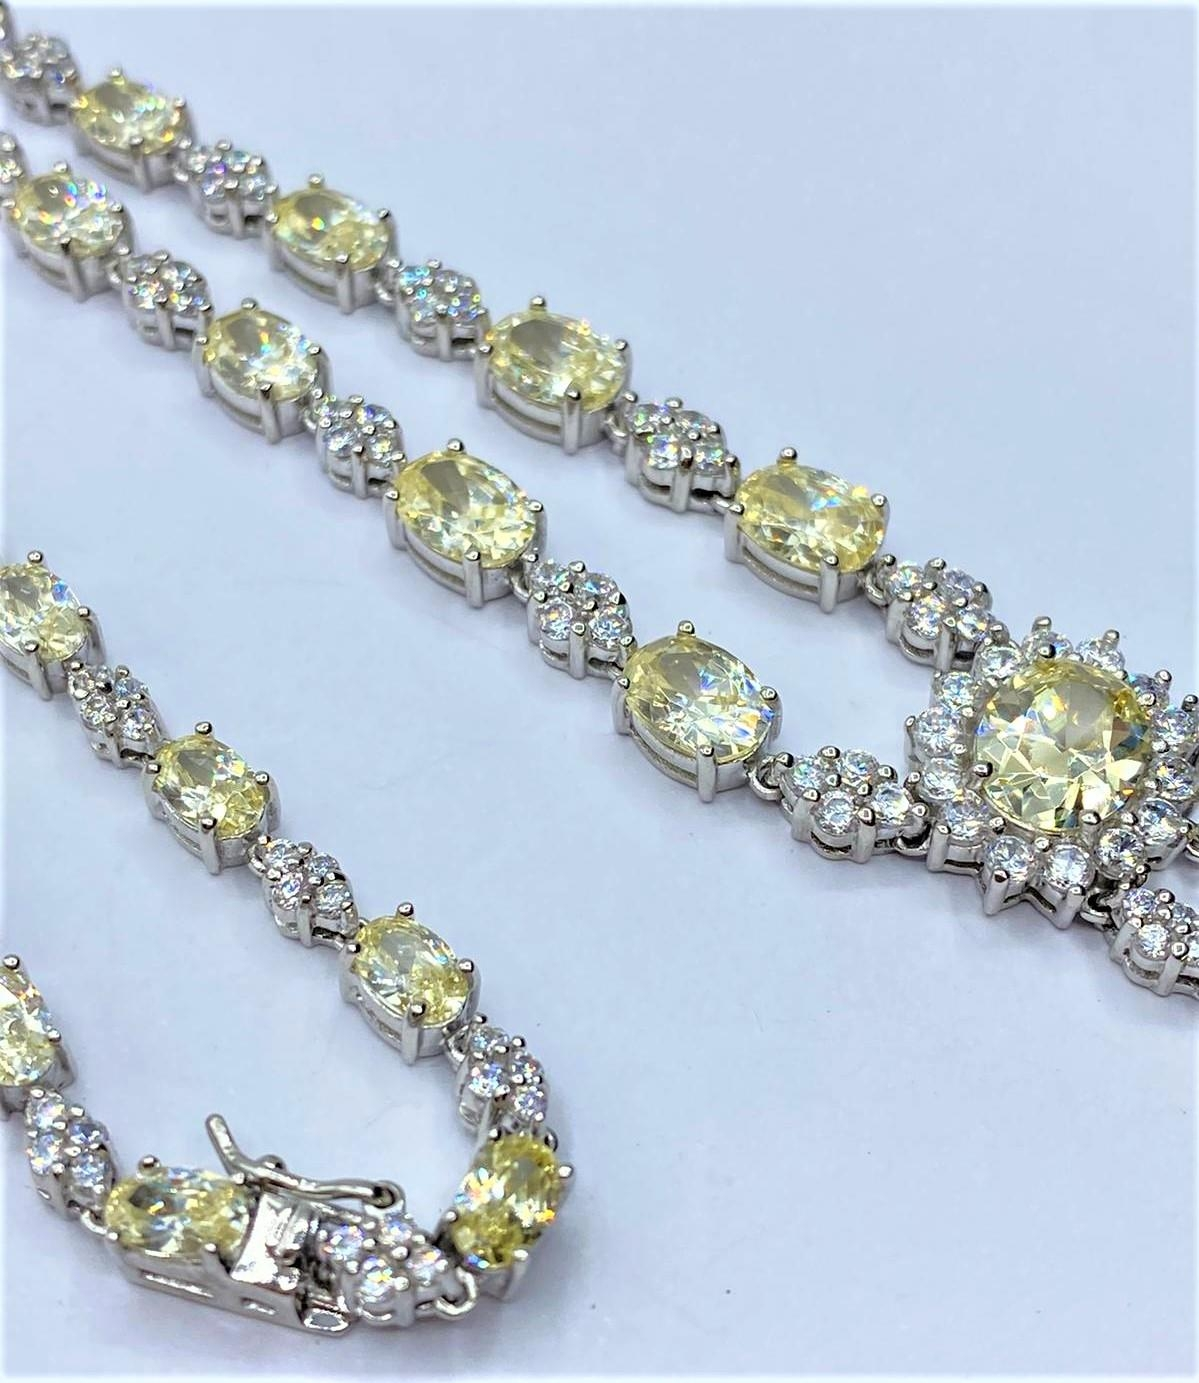 Silver heavy NECKLACE with white and yellow stones. 45.78g 40cm. - Image 2 of 3